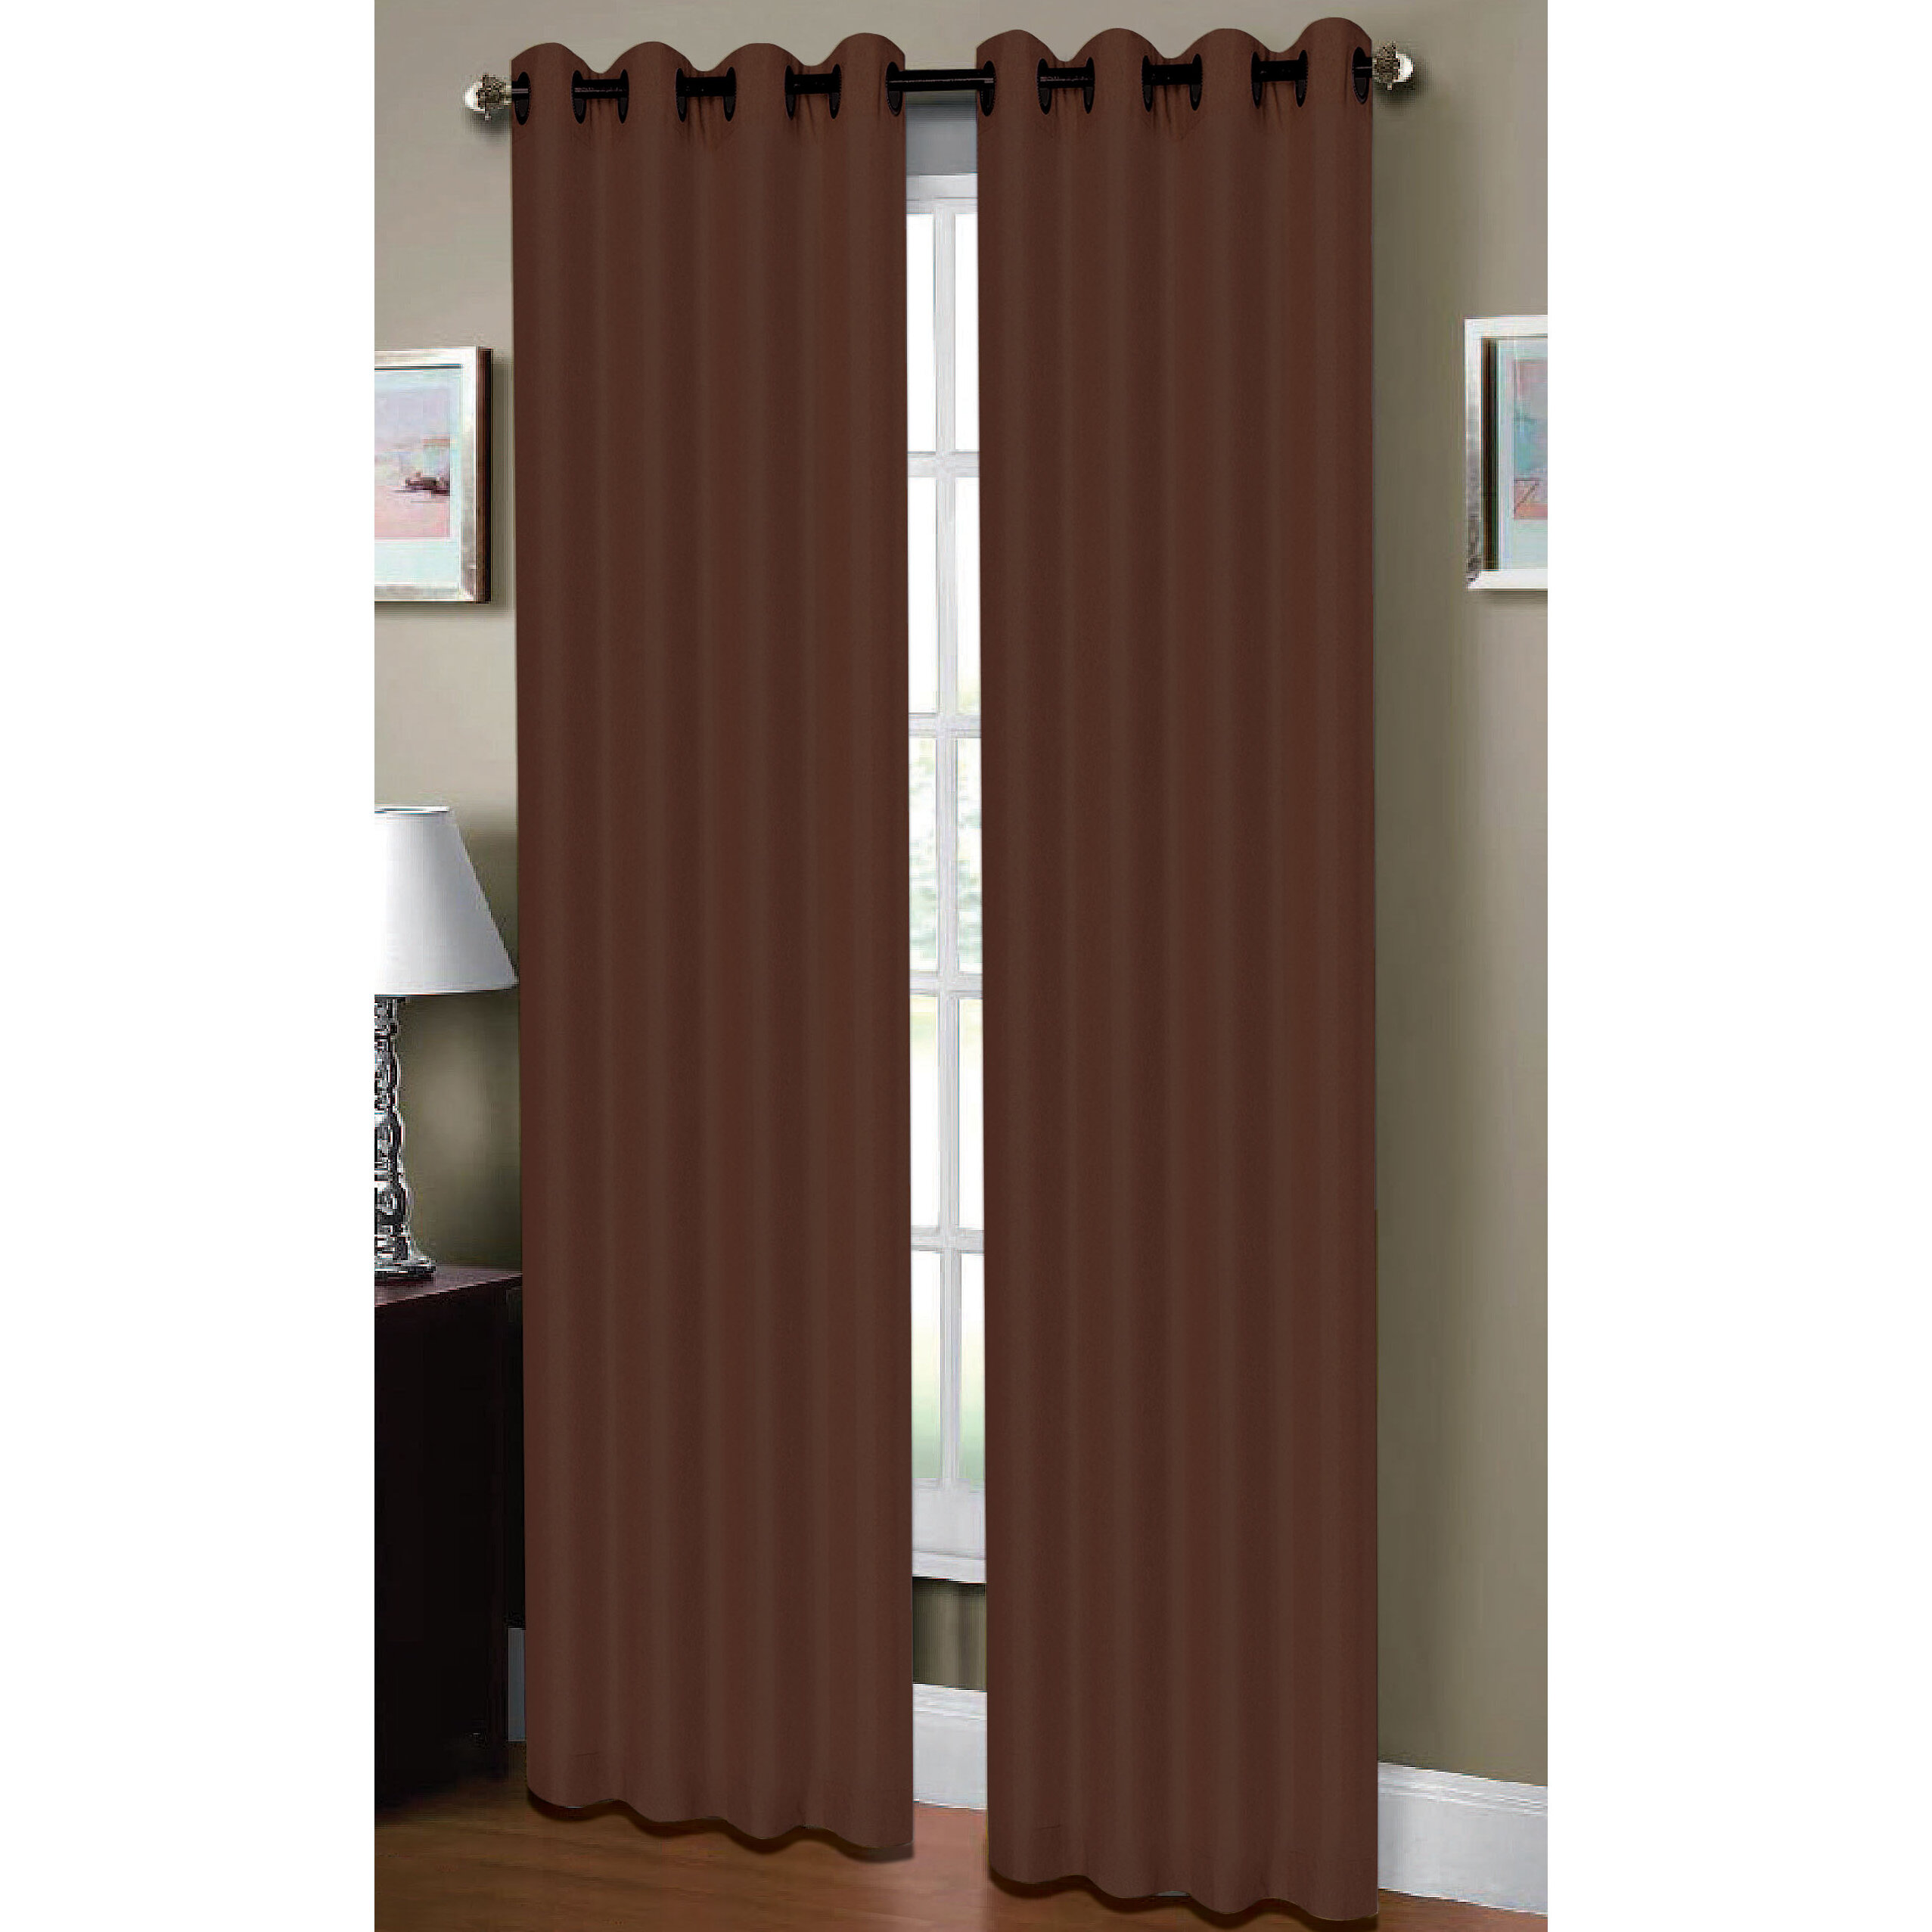 curtains coulisse wide blinds lucy loves img roman roller blackout ya ready blind making extra made canada fabric window vertical uk archives